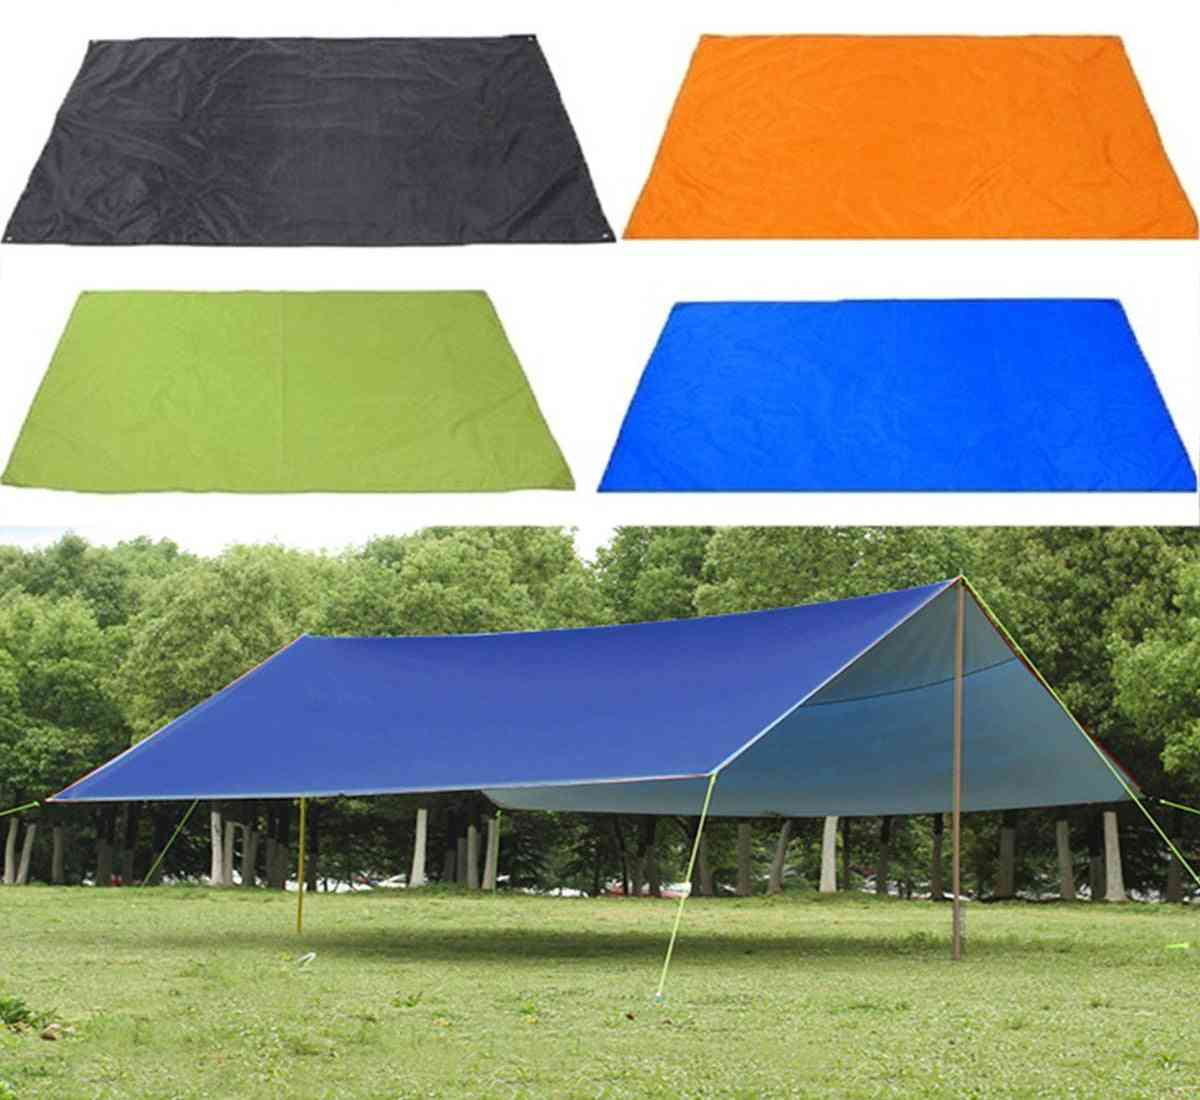 Waterproof Sun Shelter, Sunshade, Protection Outdoor Canopy, Garden Patio Pool Shade, Sail Awning, Camping Picnic Tent